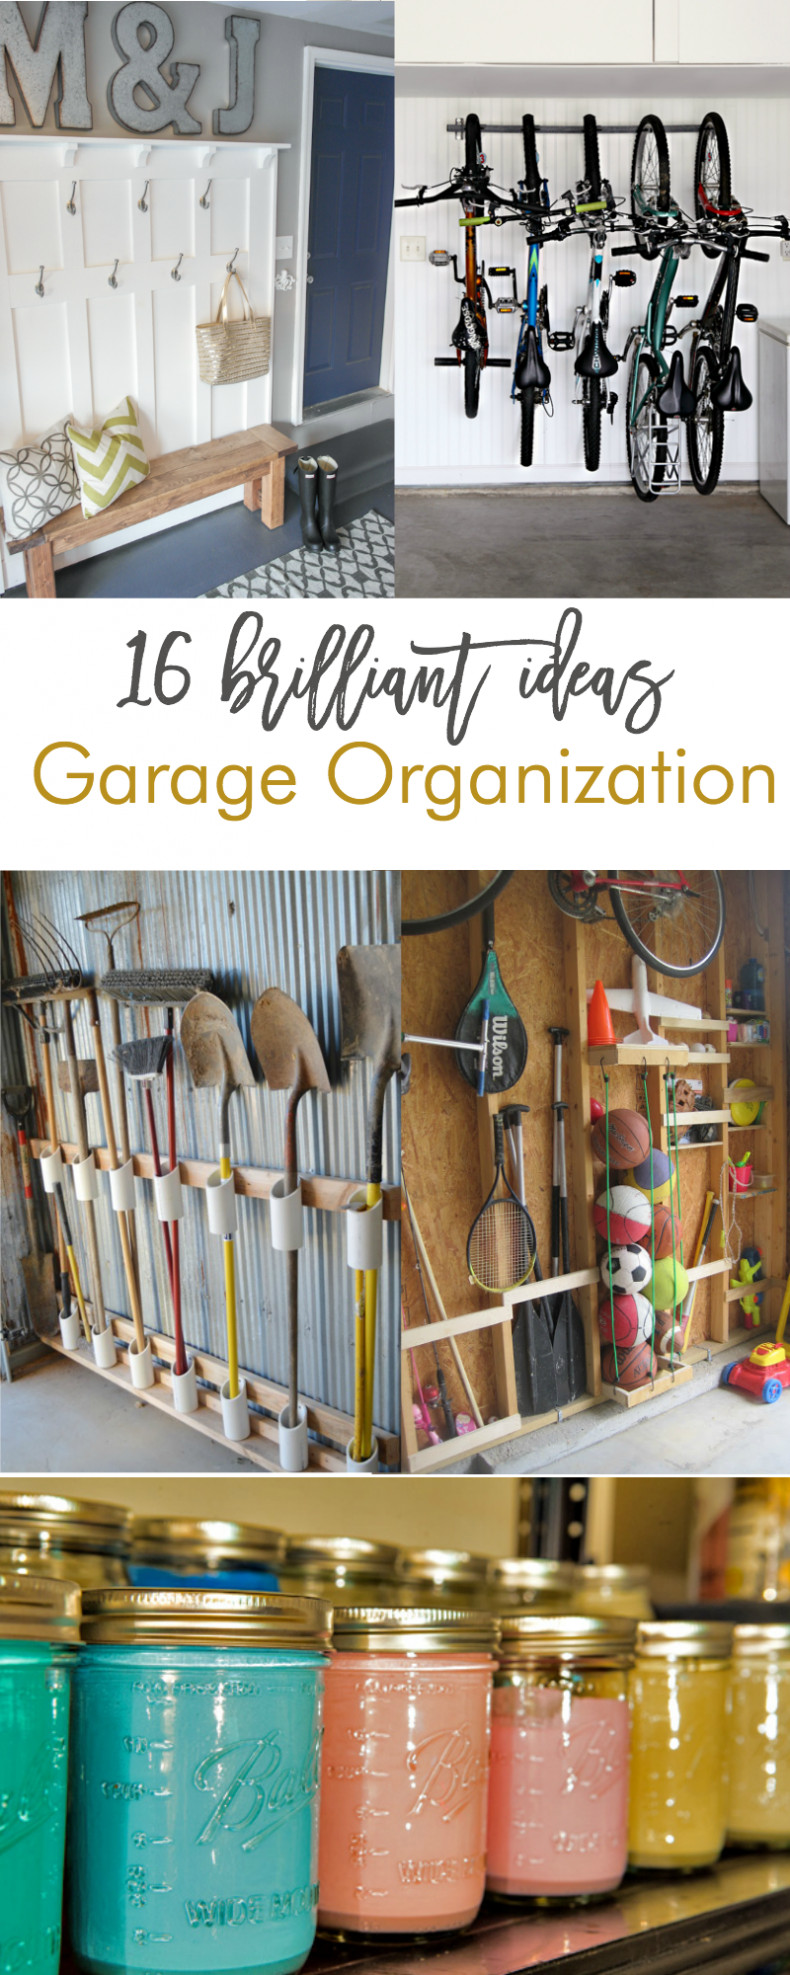 Best ideas about Garage Organization Ideas Diy . Save or Pin 16 Brilliant DIY Garage Organization Ideas Now.